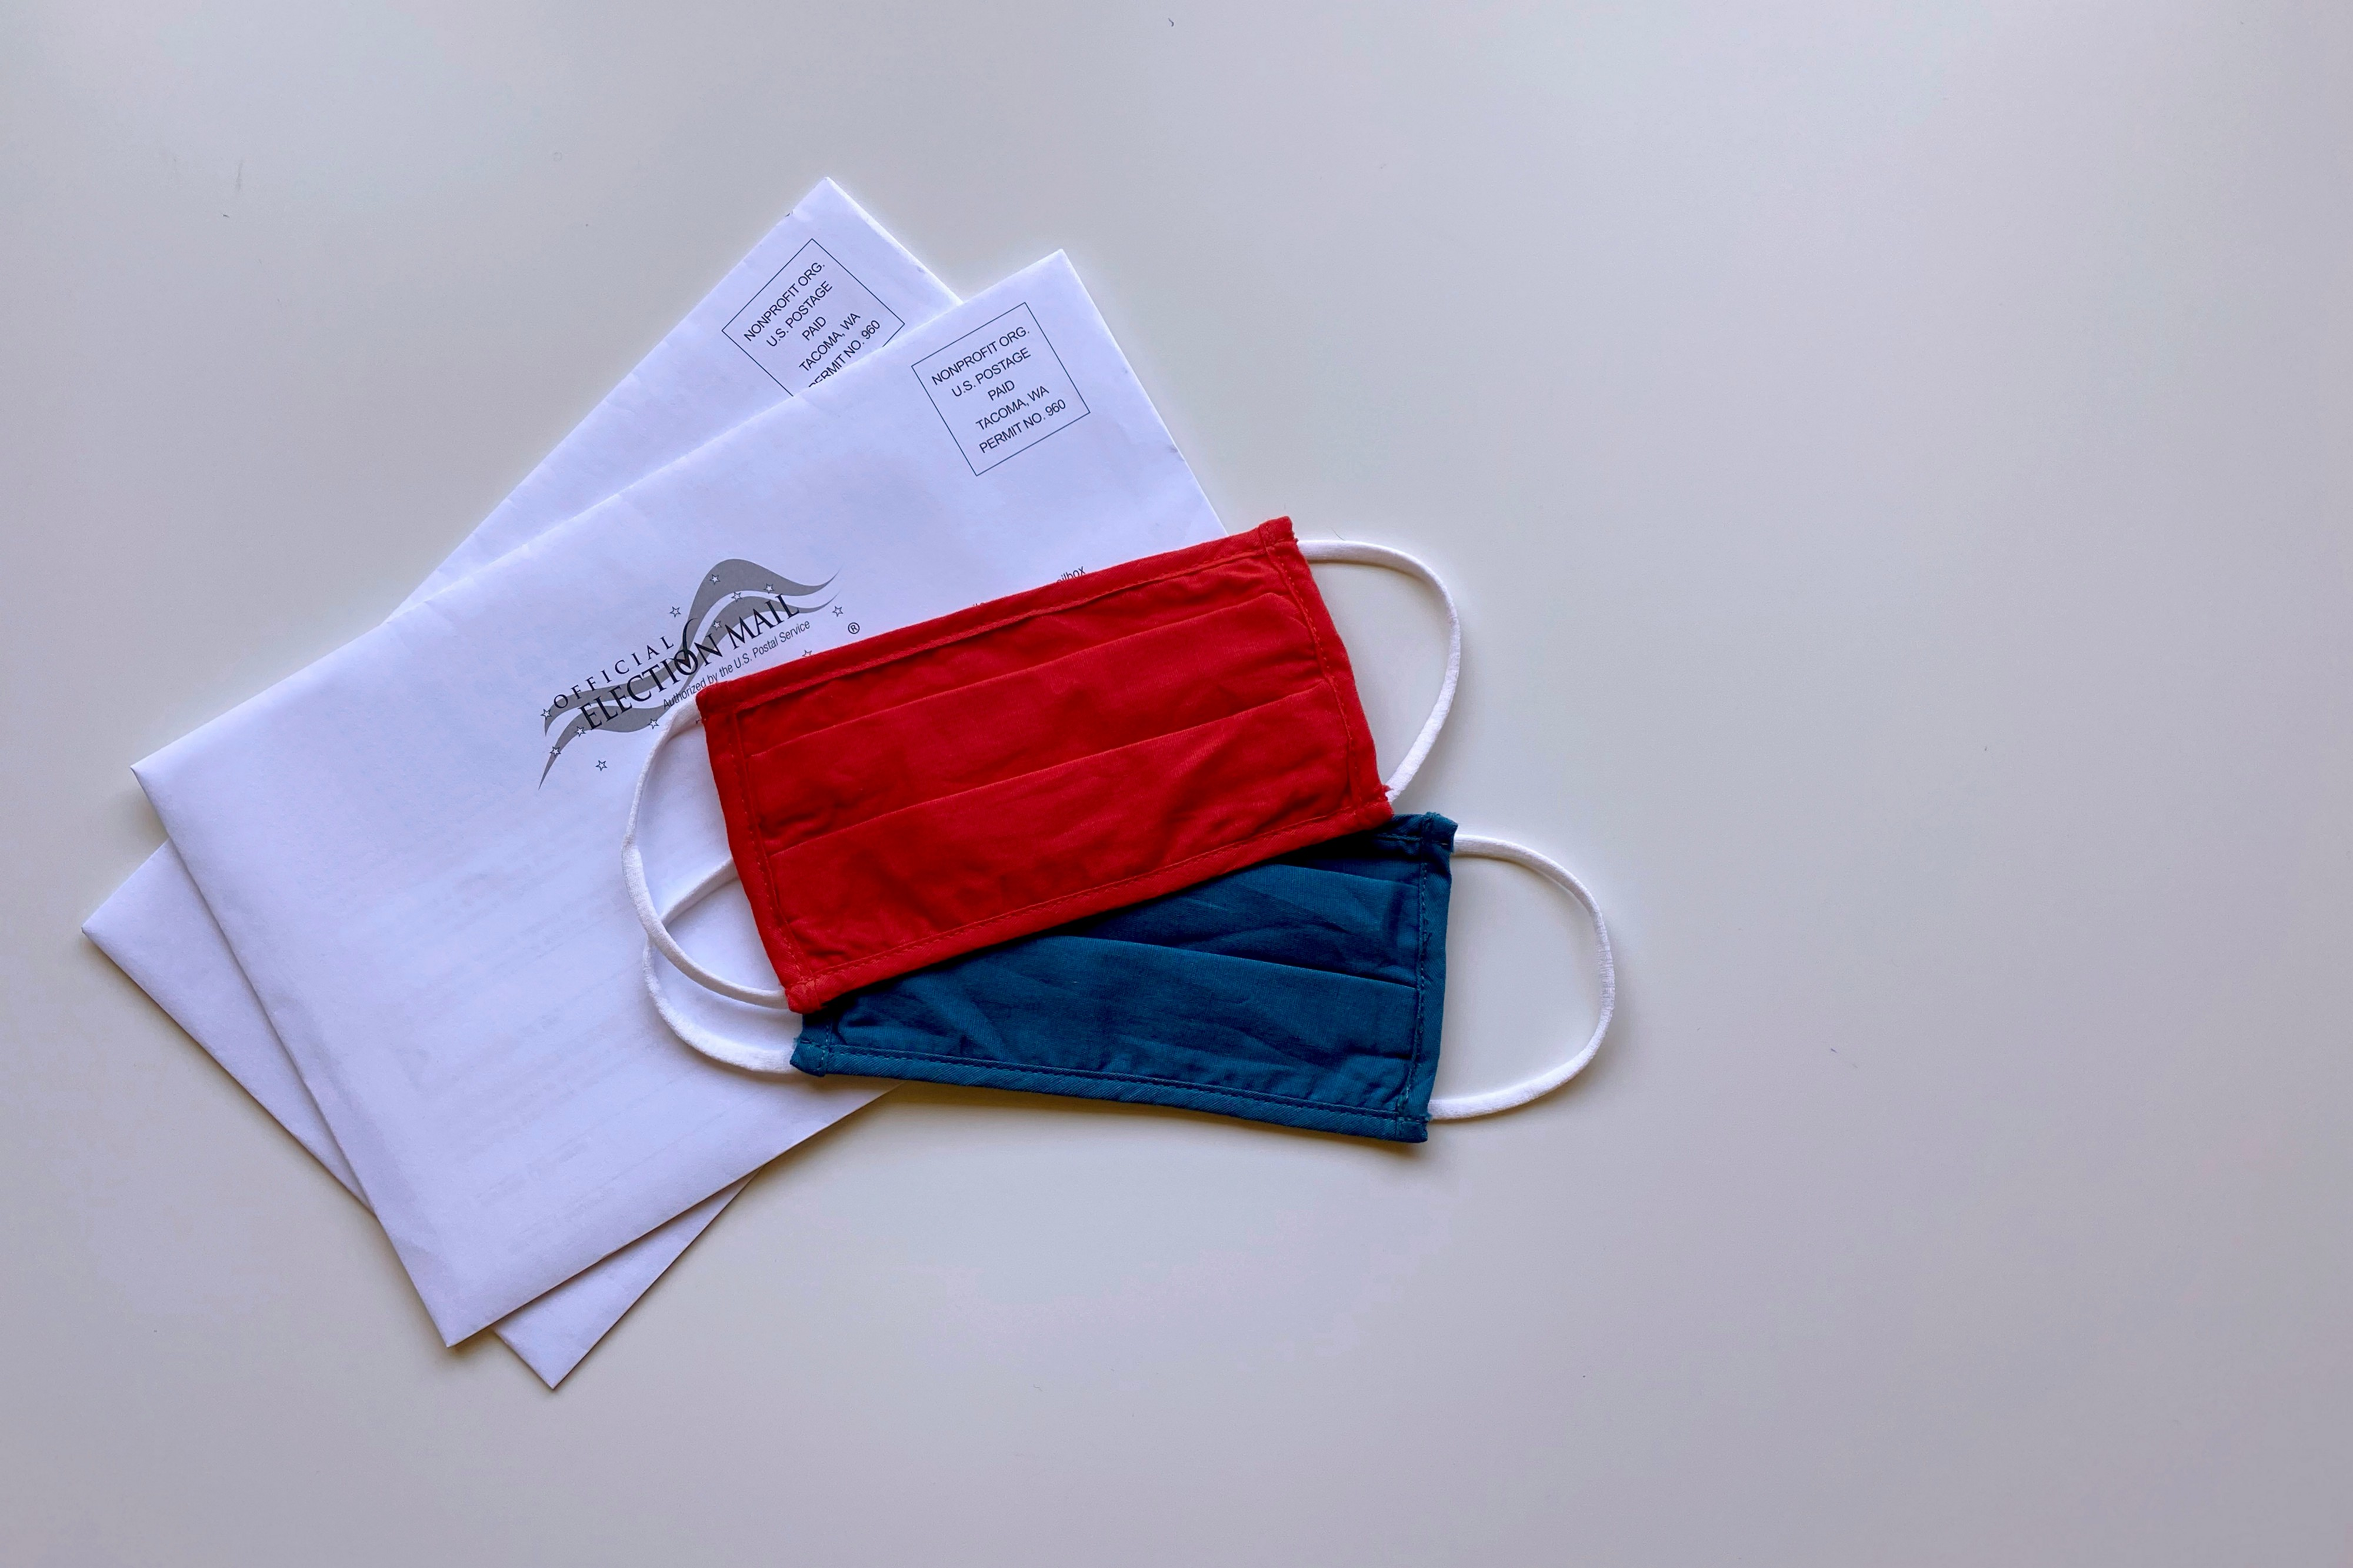 """Two """"Election Mail"""" envelopes stacked iwth a red mask and a blue mask laid on top"""